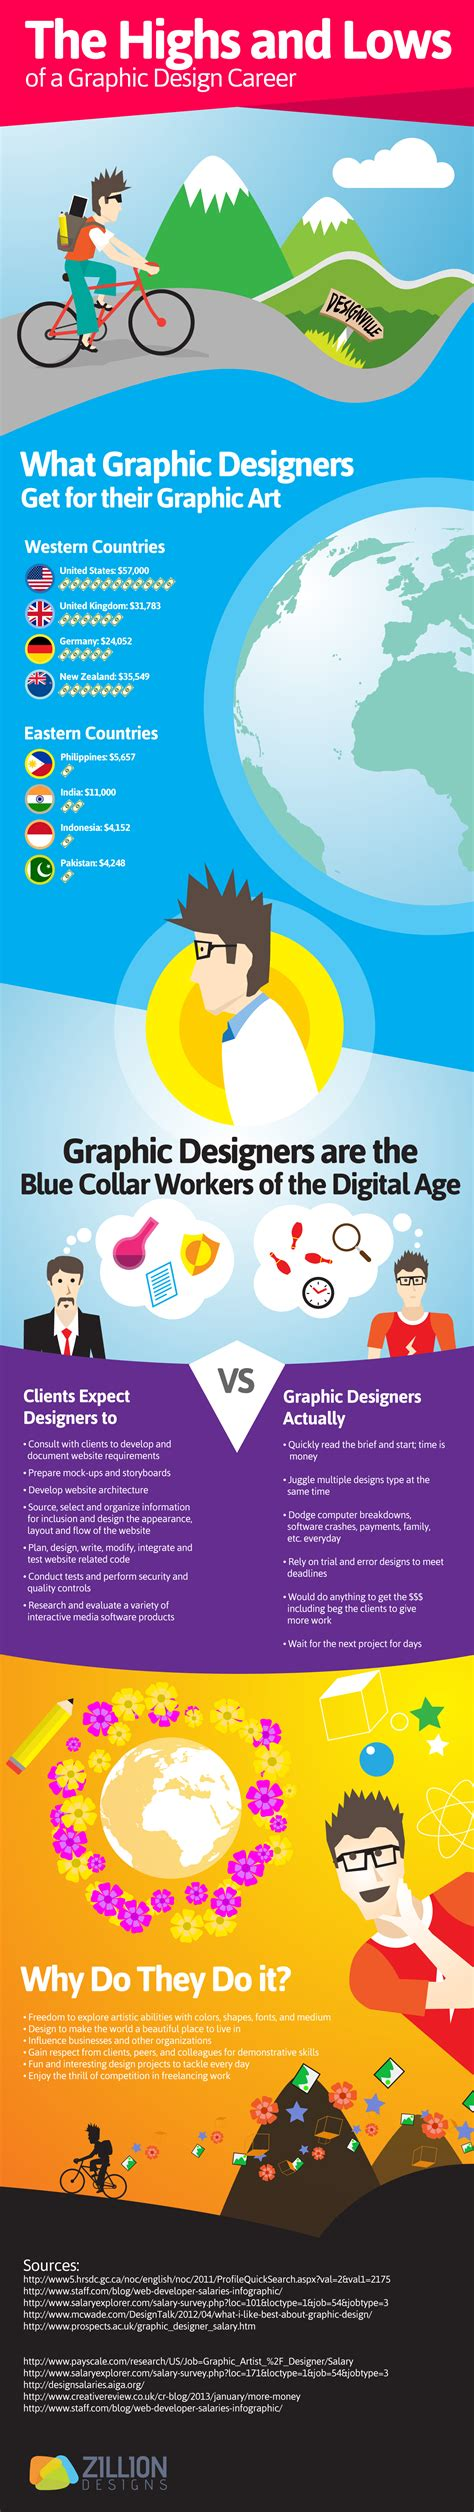 graphic design career the highs and lows of a graphic design career